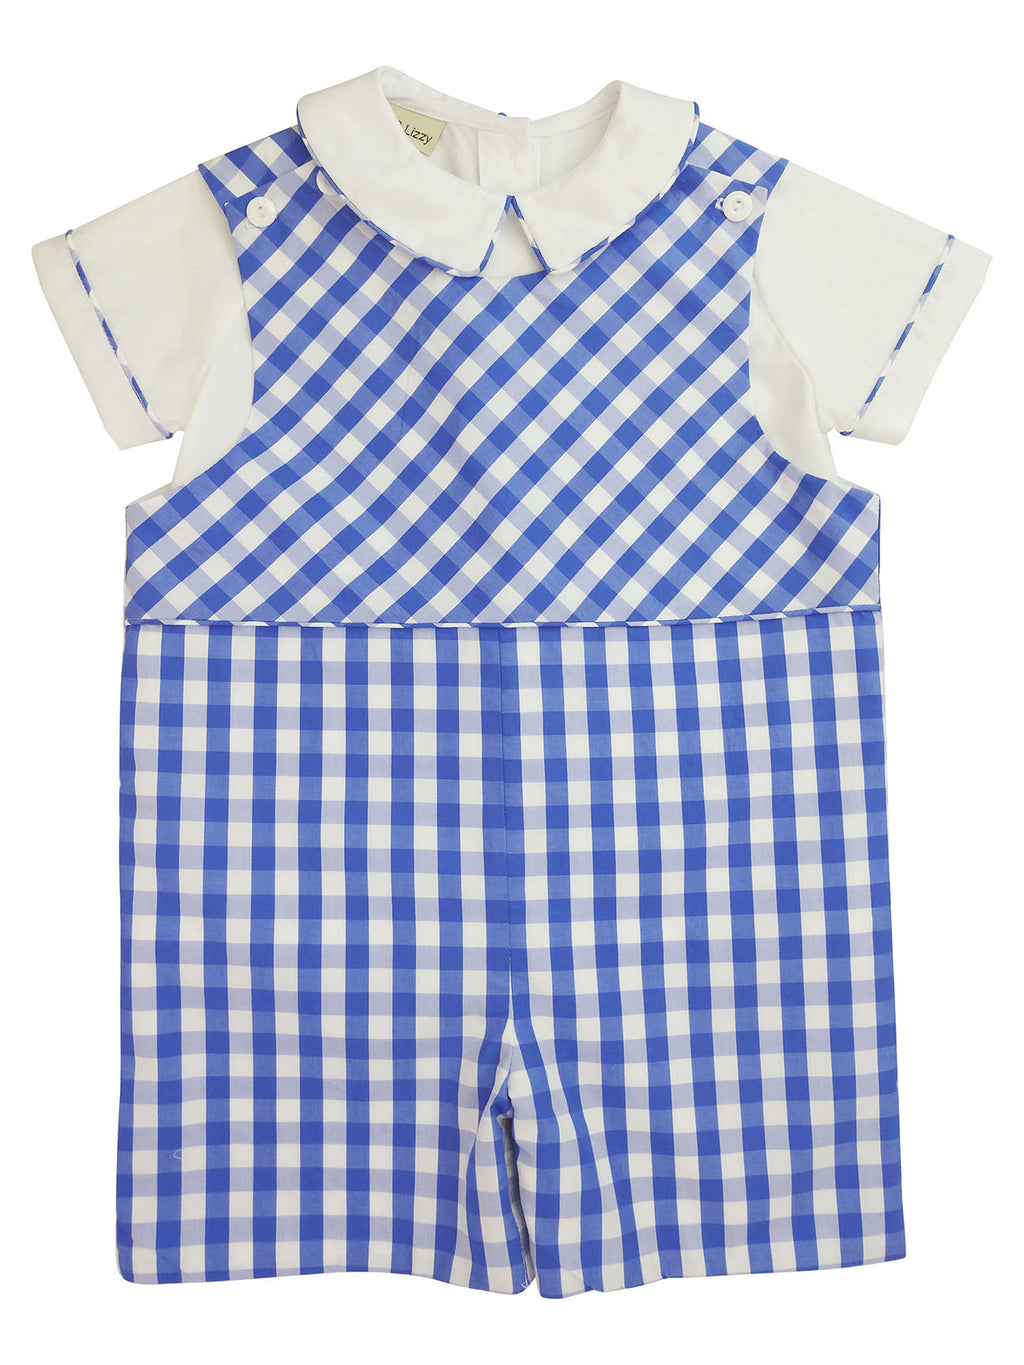 Andy Blue checks  boy's Overall set